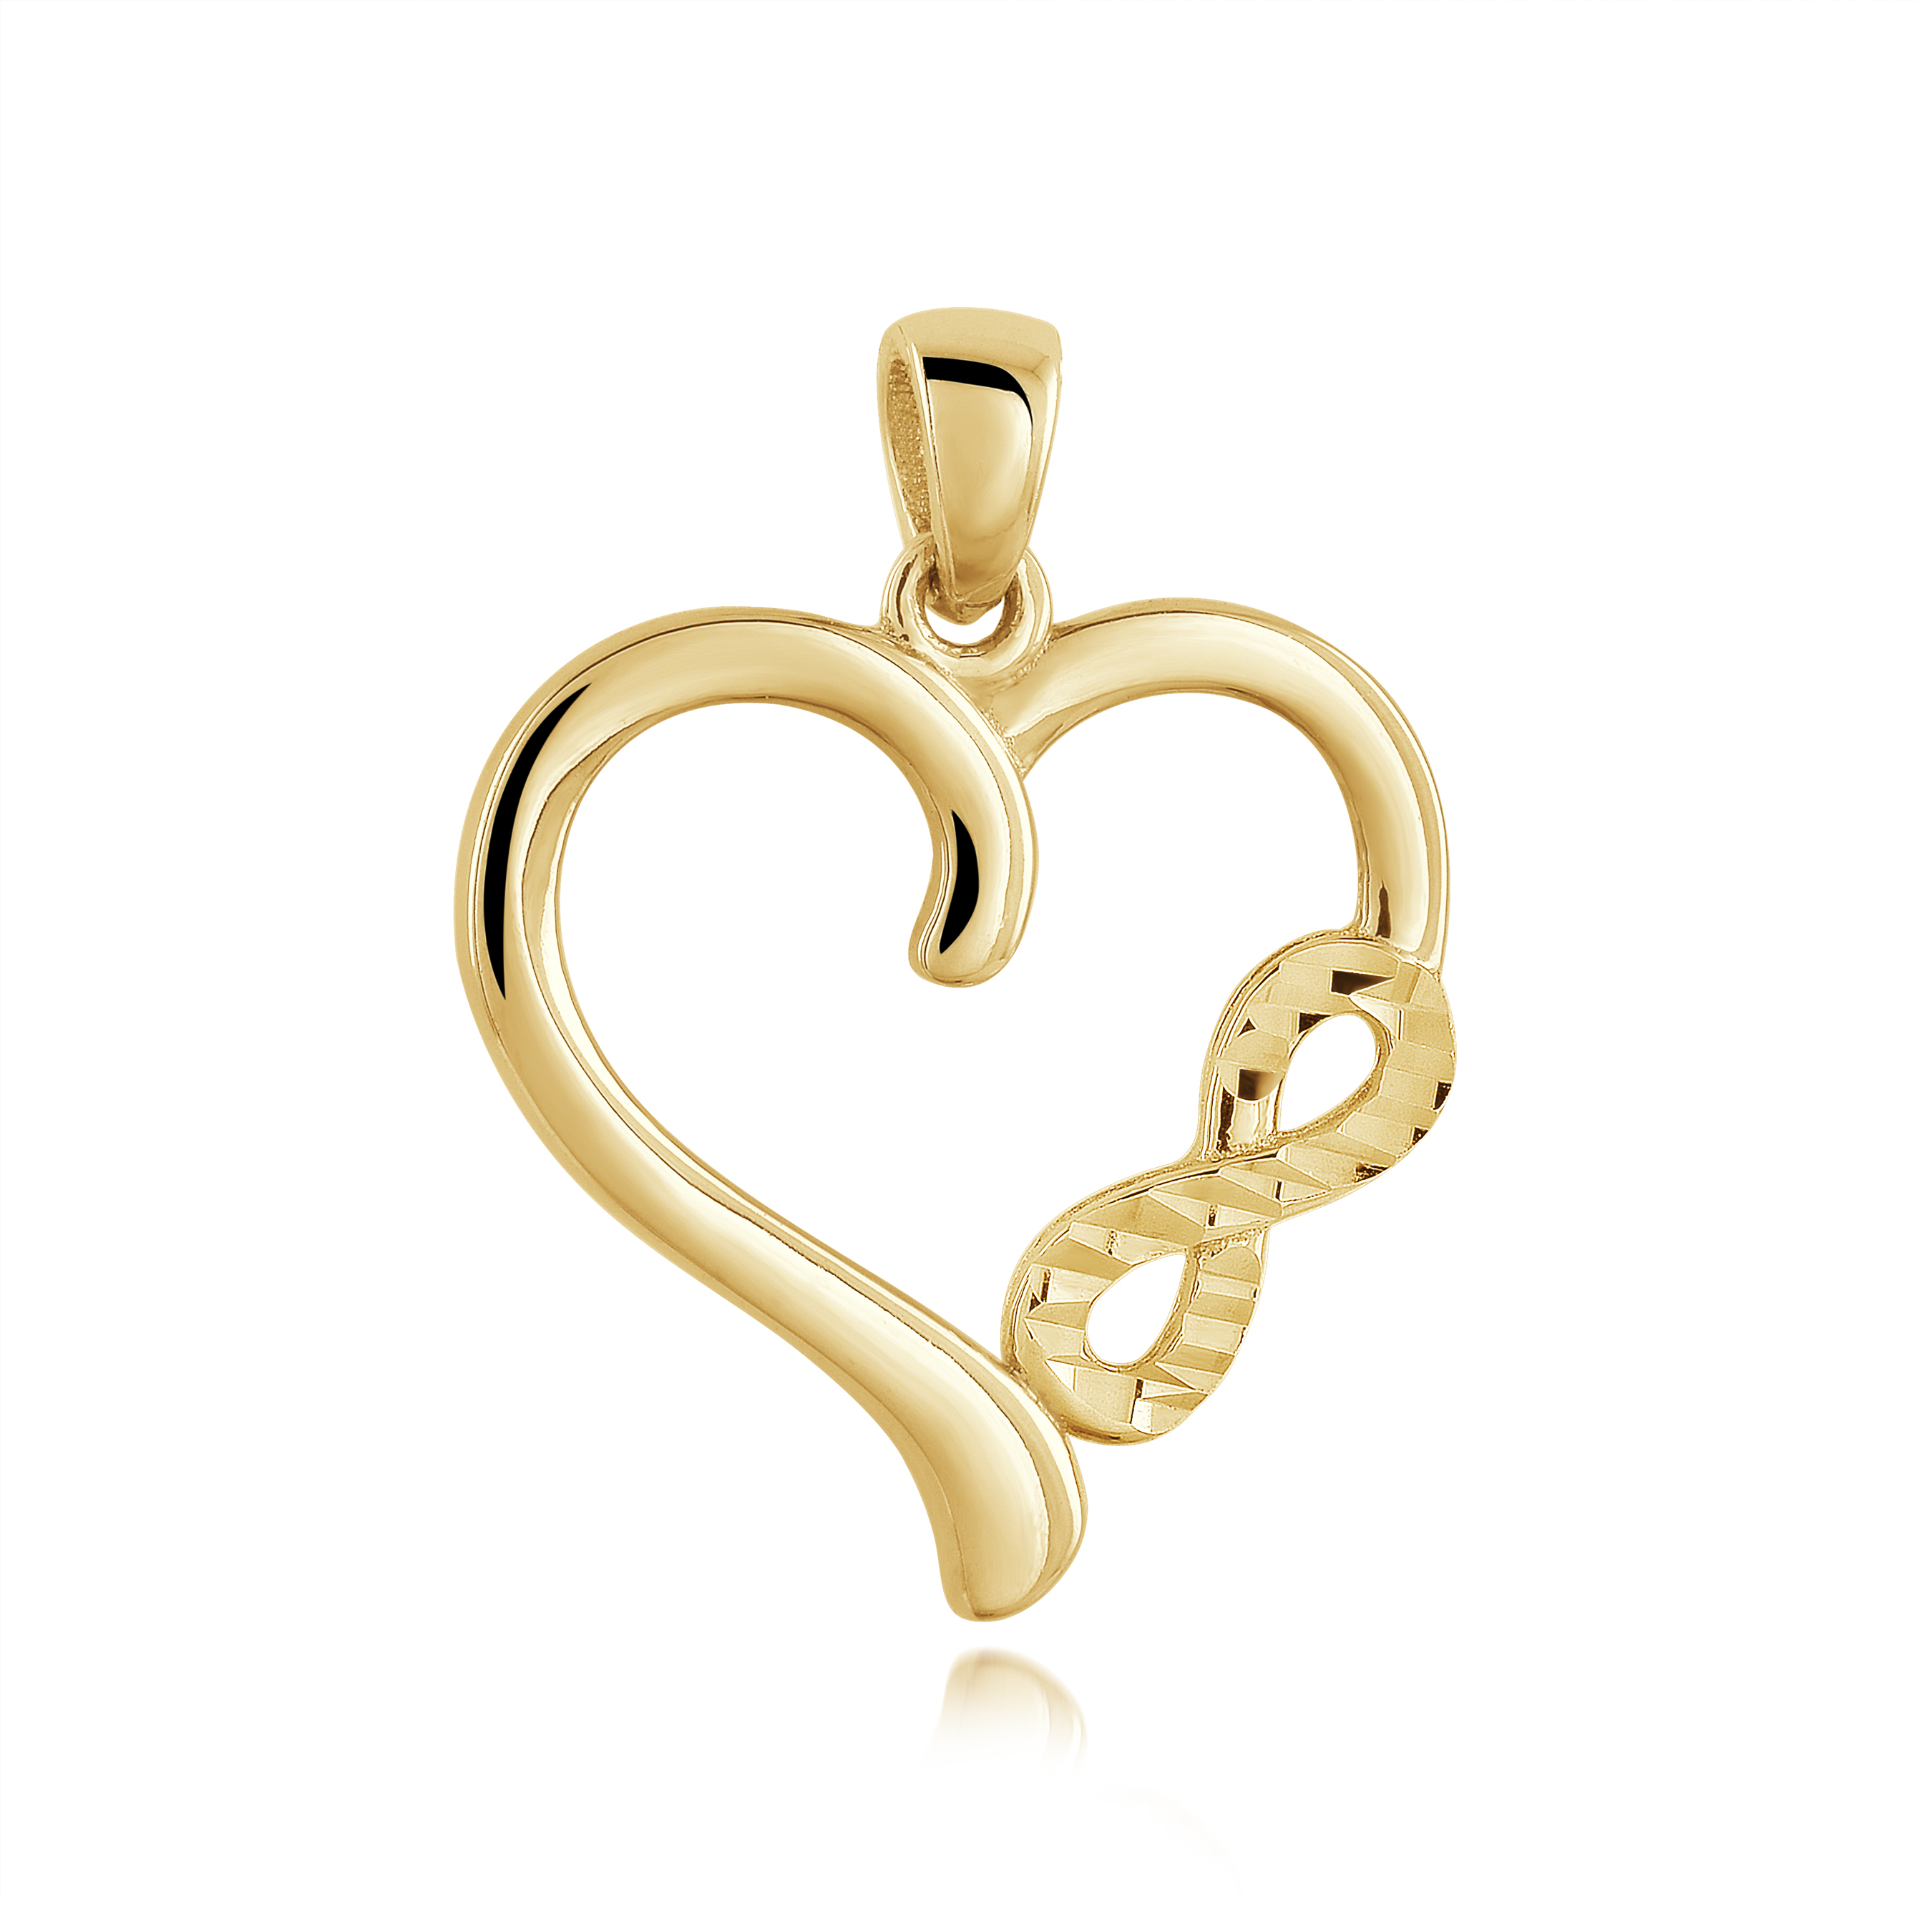 Heart & infinity pendant for woman - 10K yellow gold